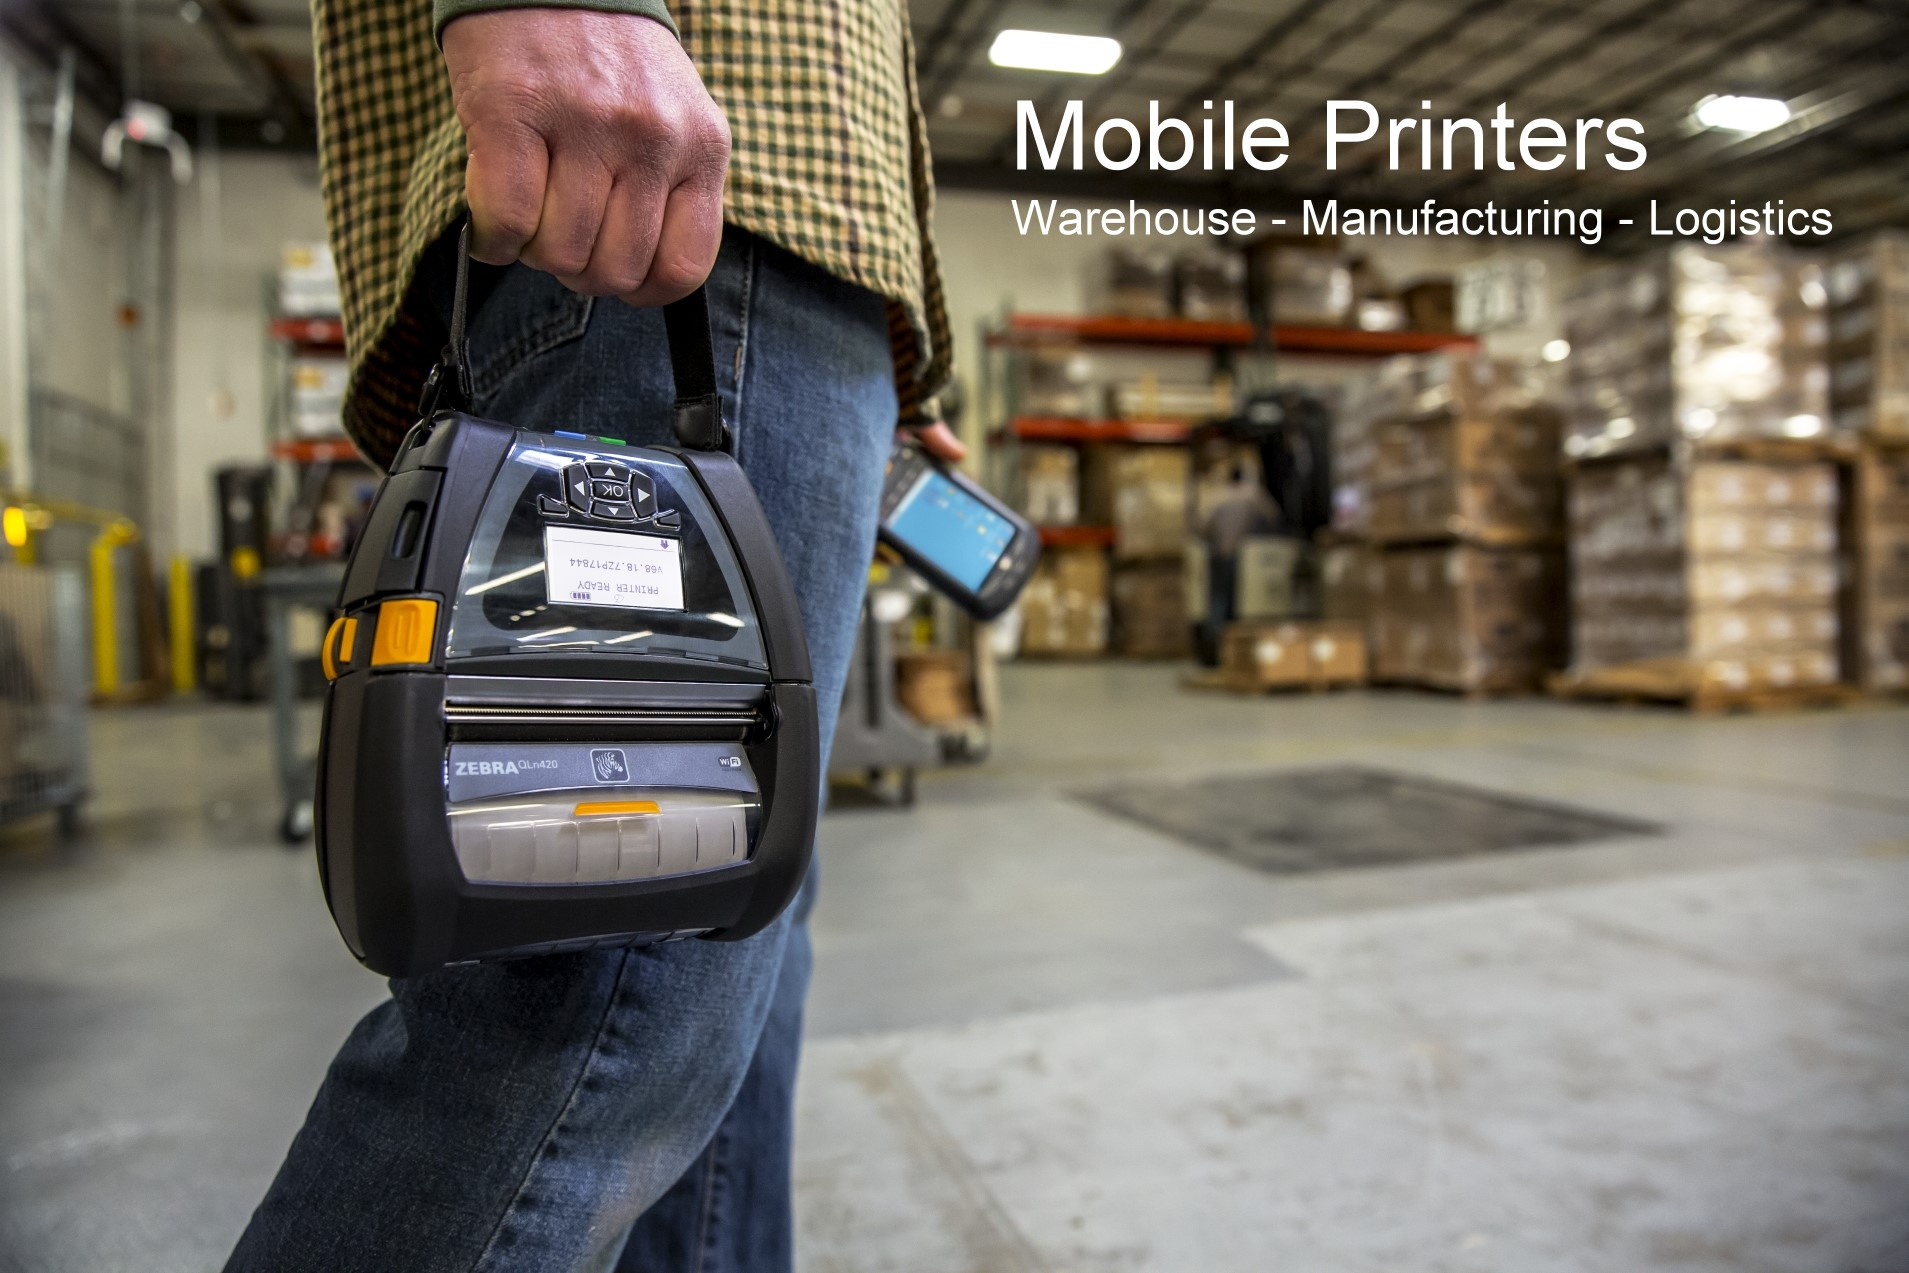 Industrial Mobile Printers